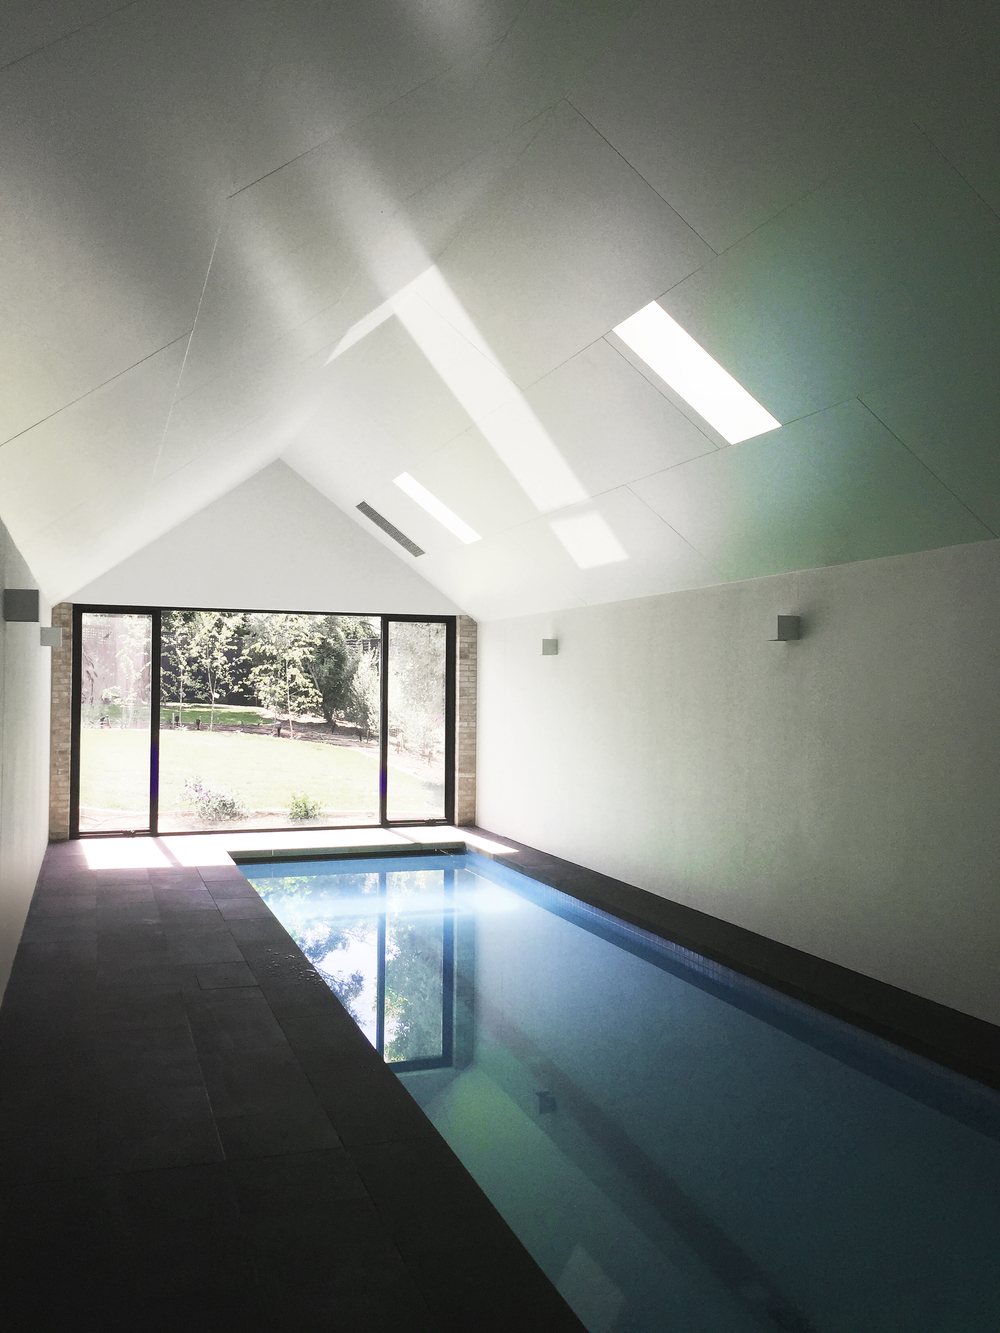 Garden house pool by Chamberlain Architects